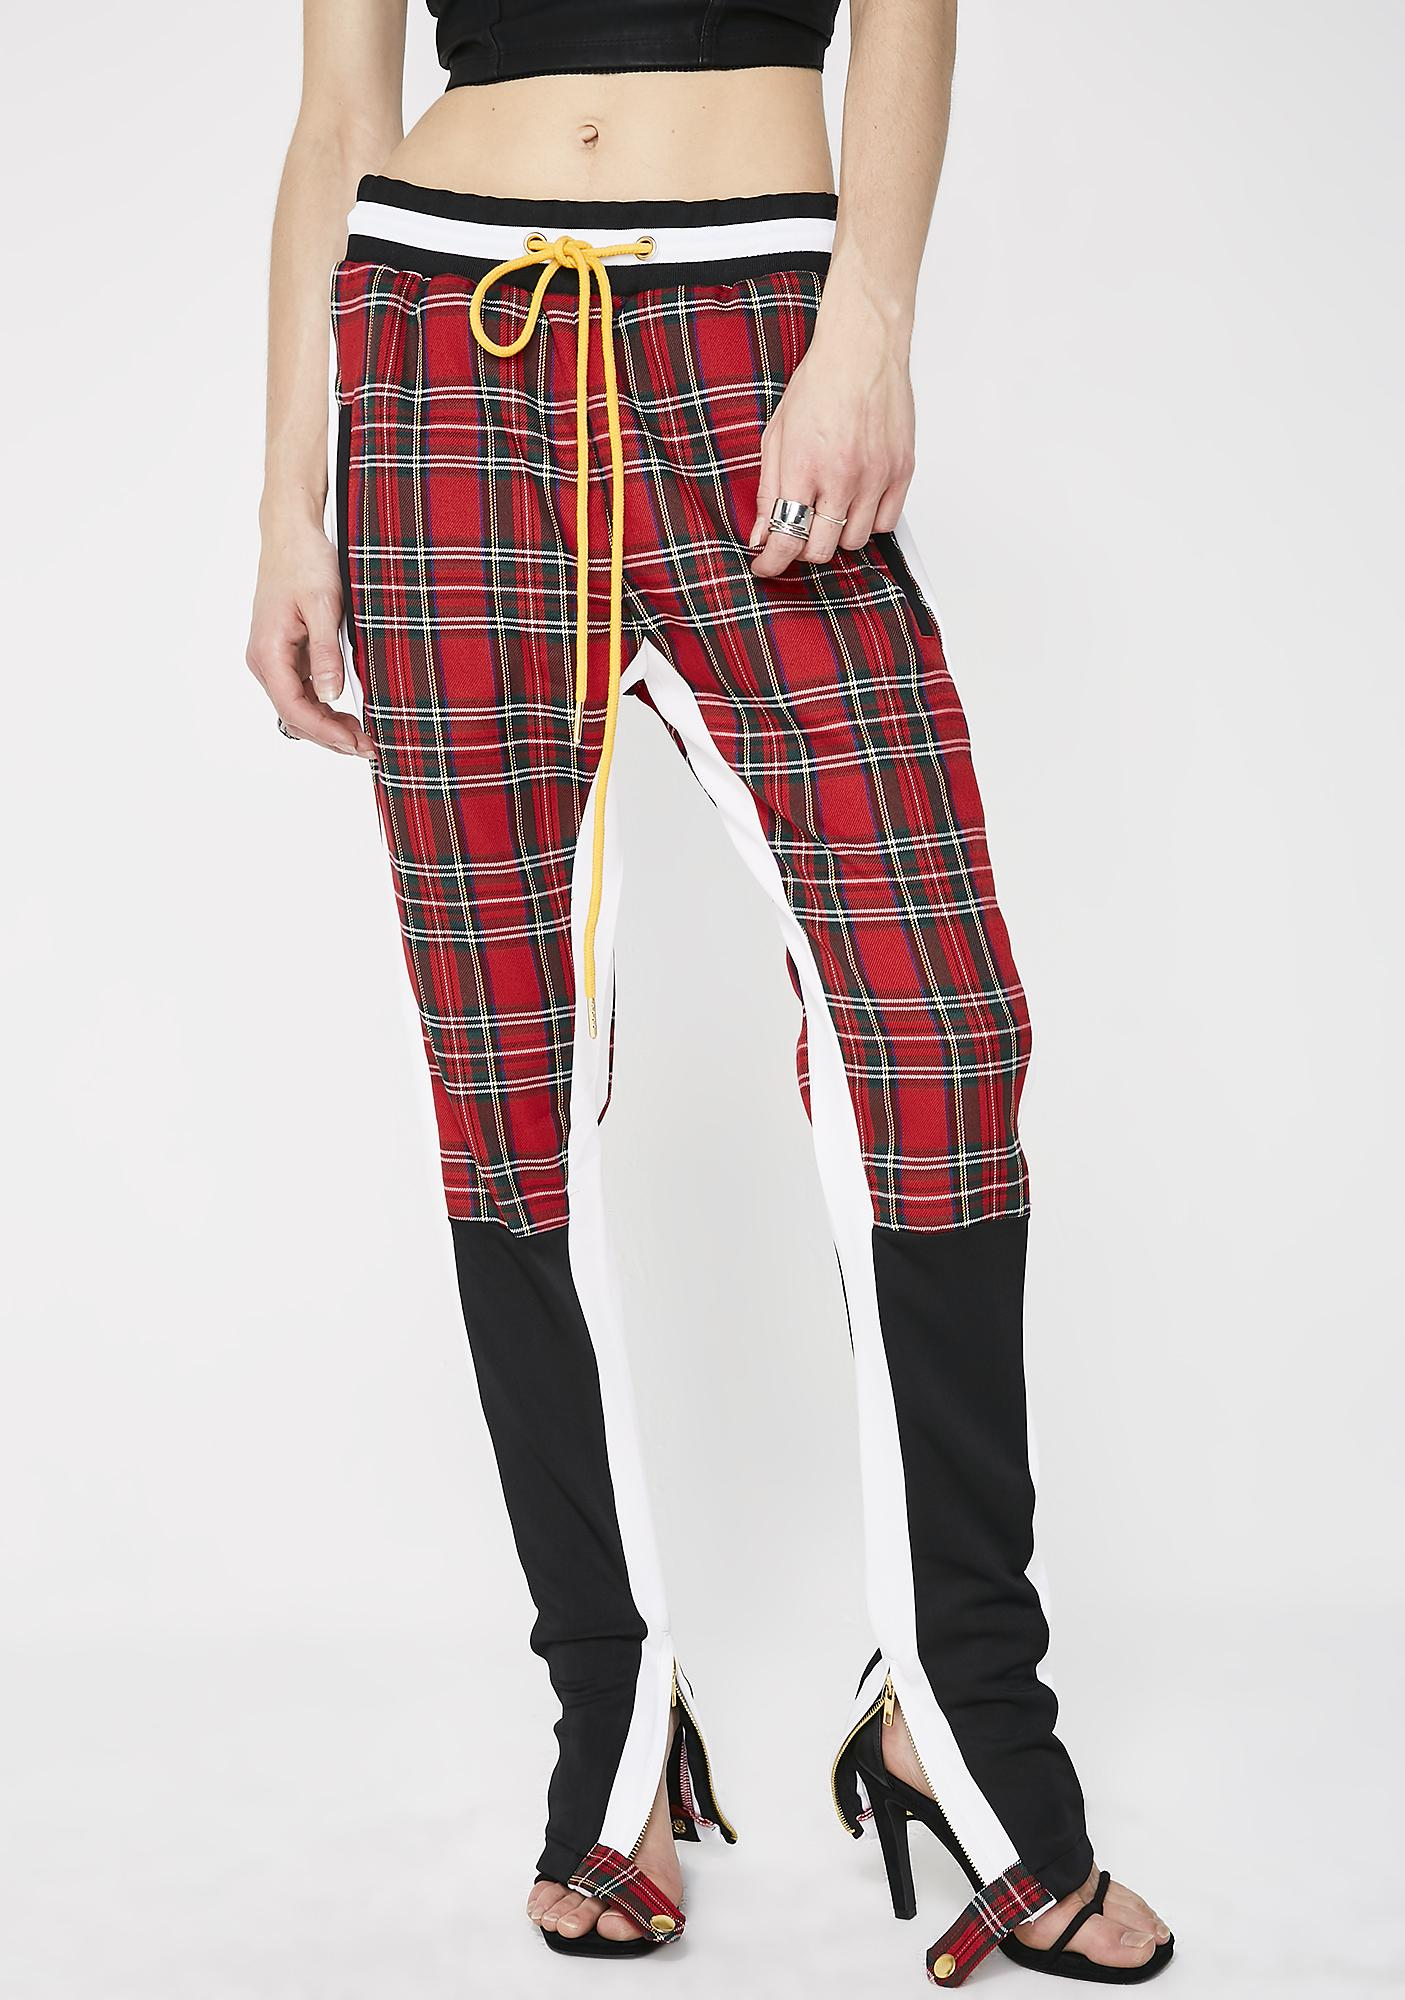 Dare To Try Plaid Pants